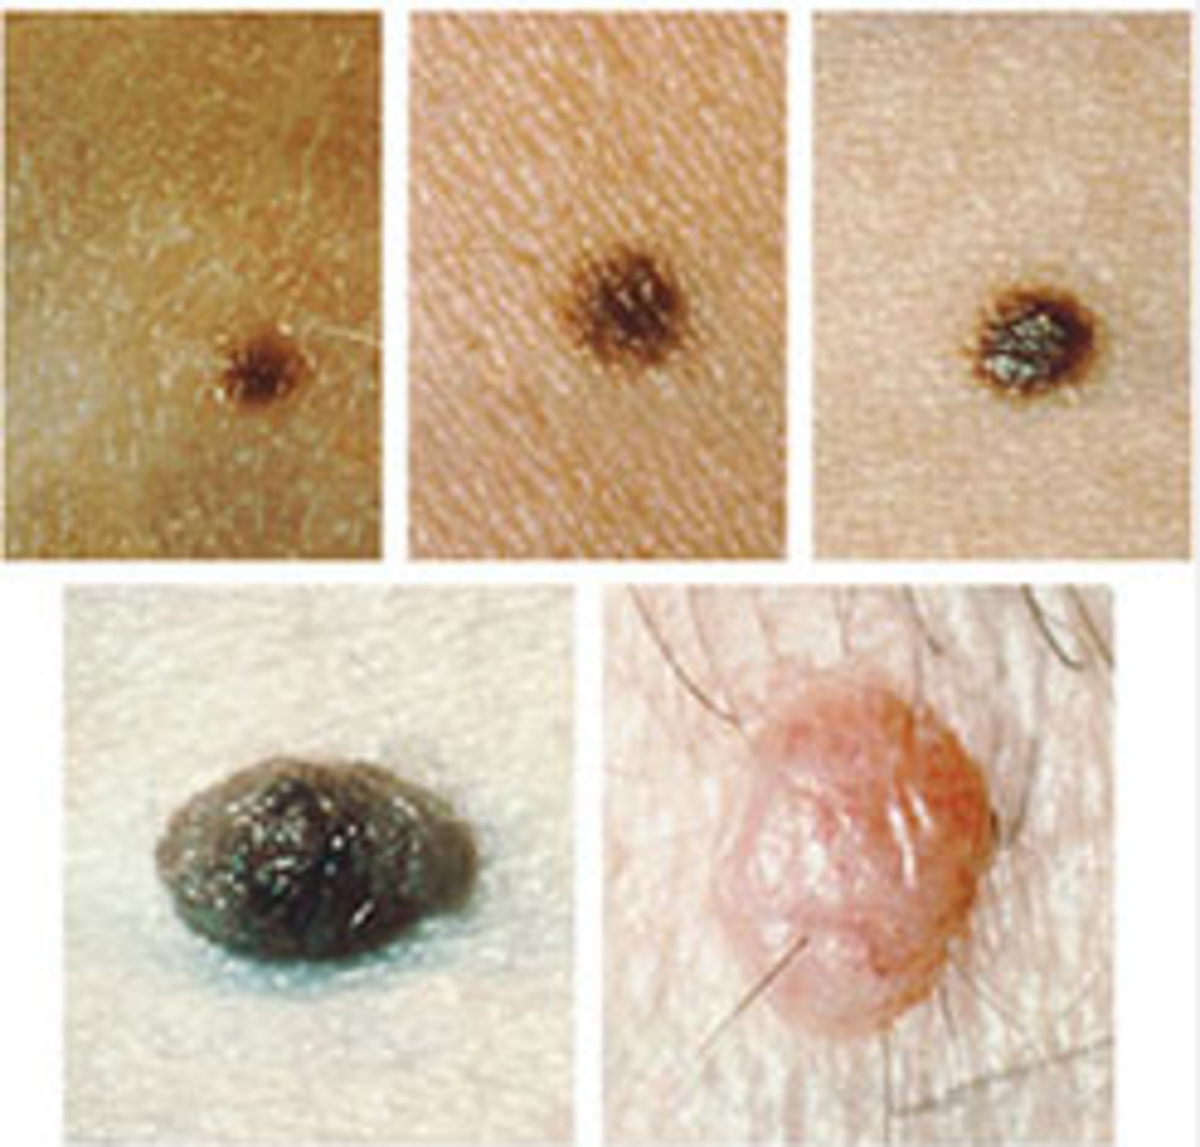 Examples of common moles. Image courtesy Cancer.gov